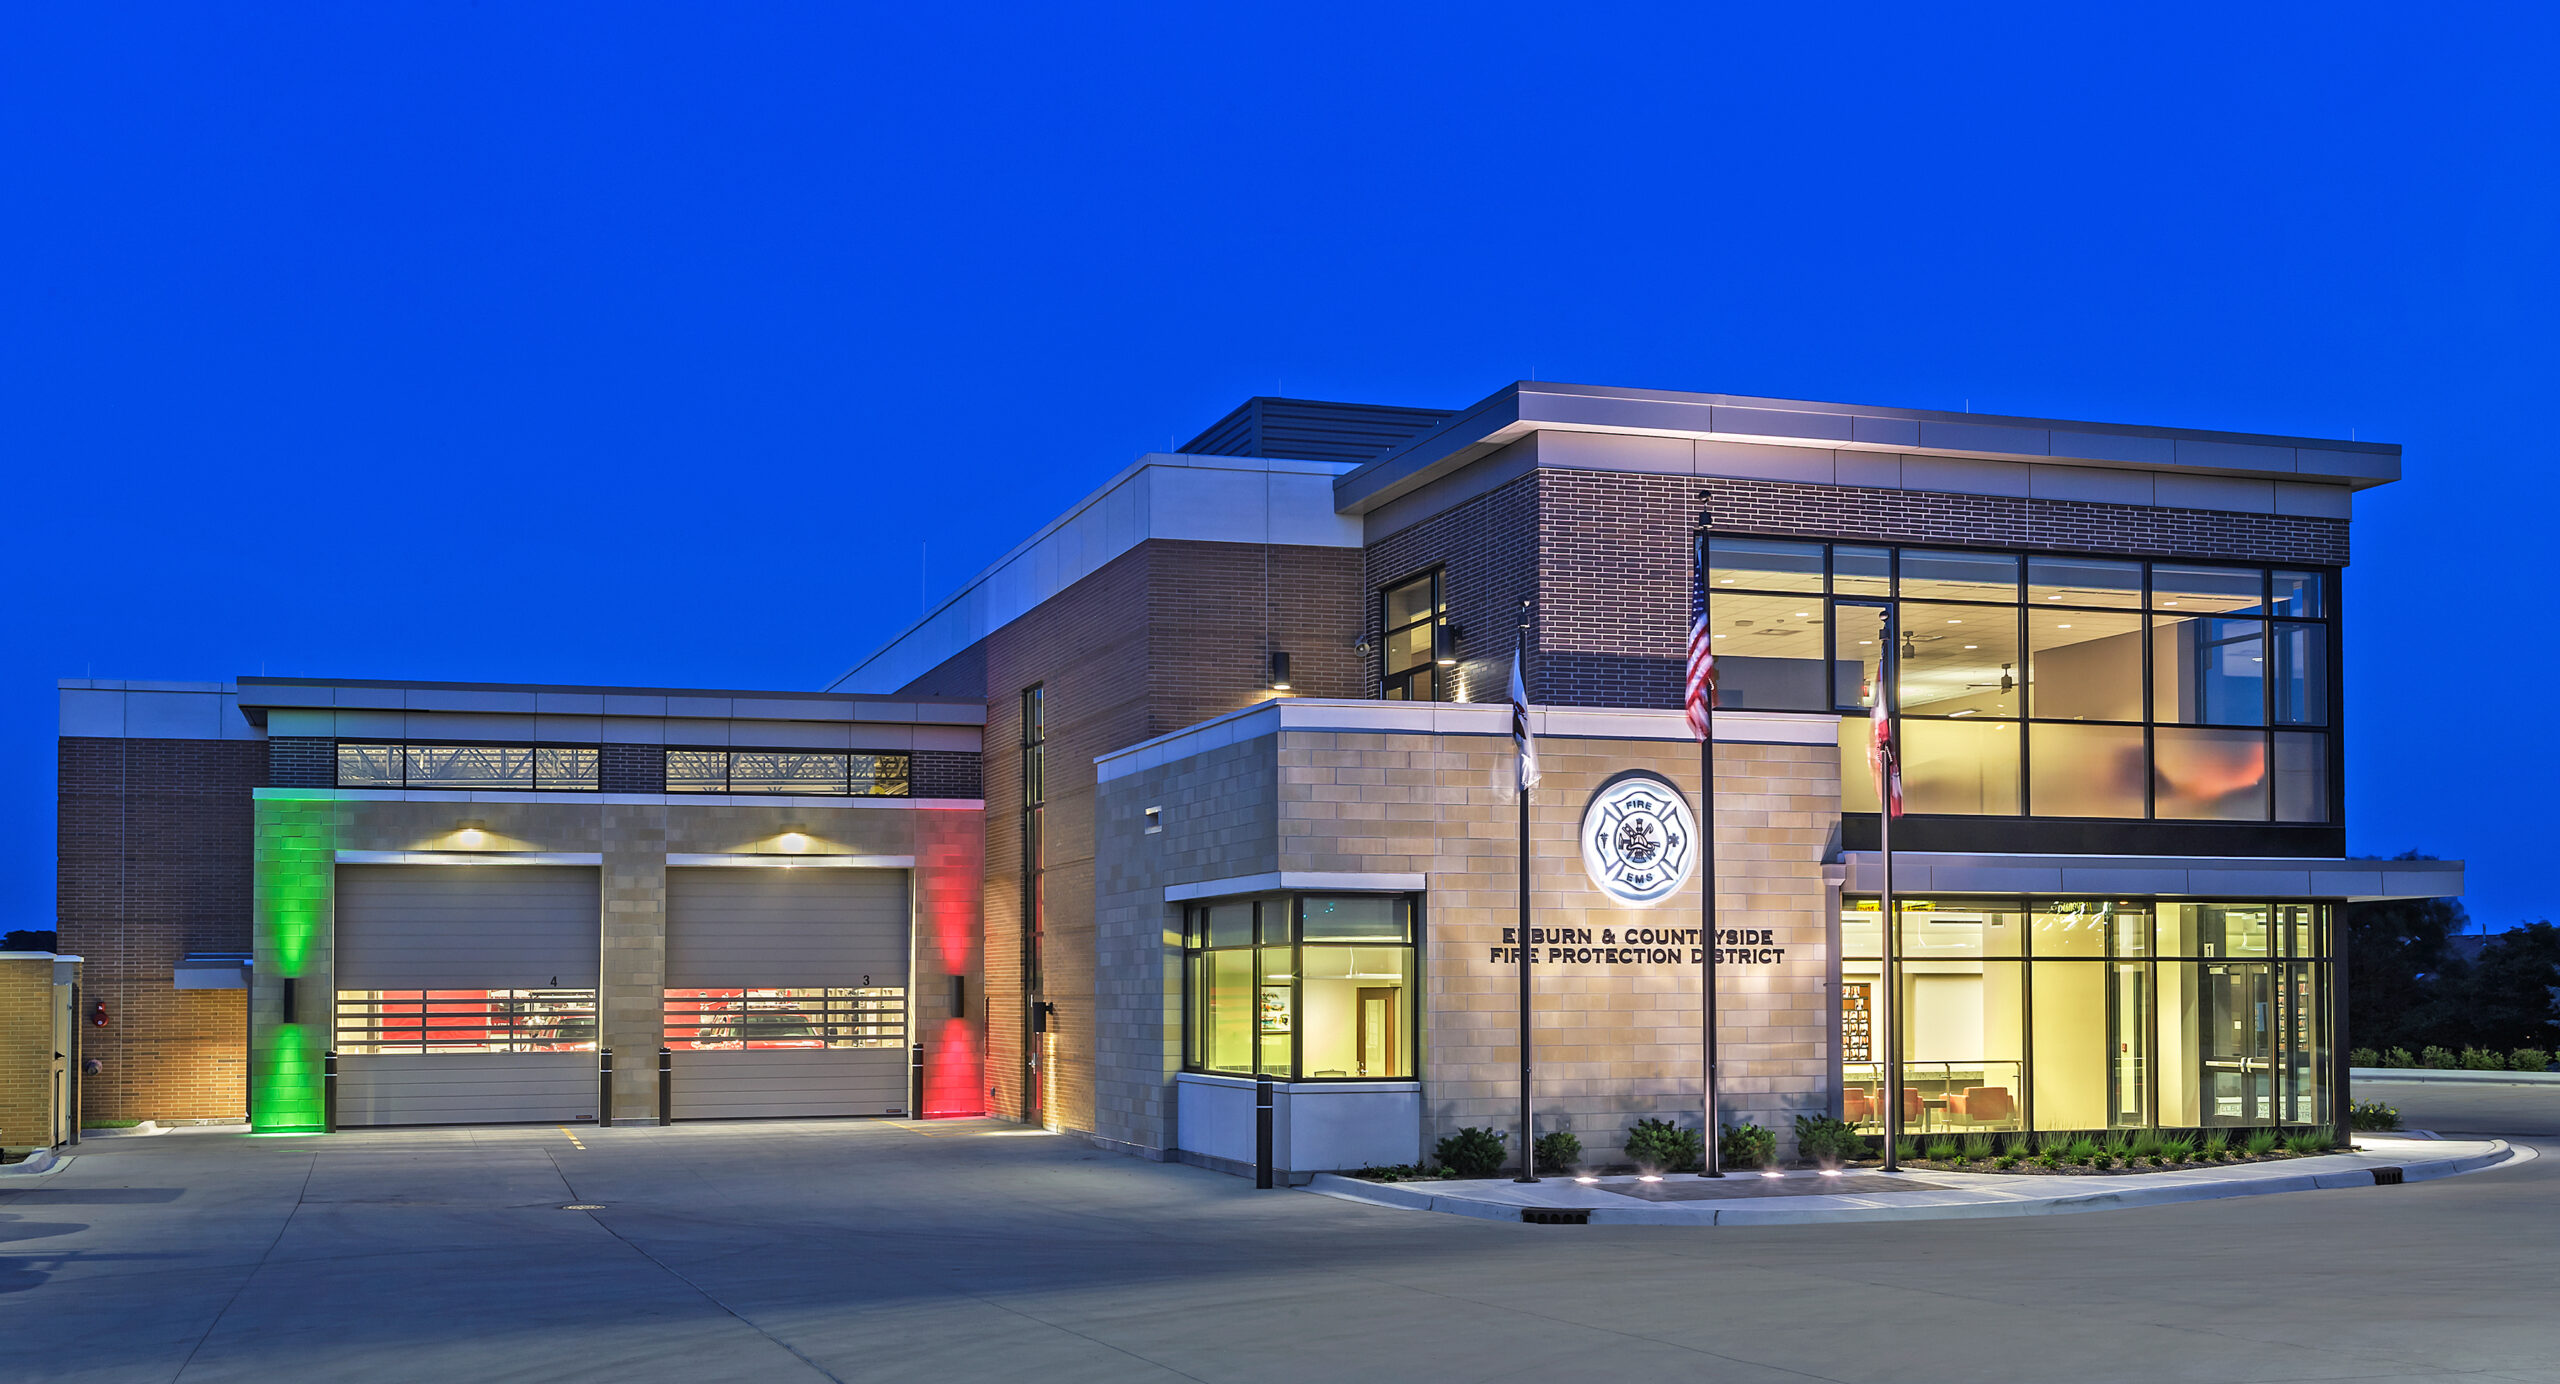 fire station in elburn countryside illinois